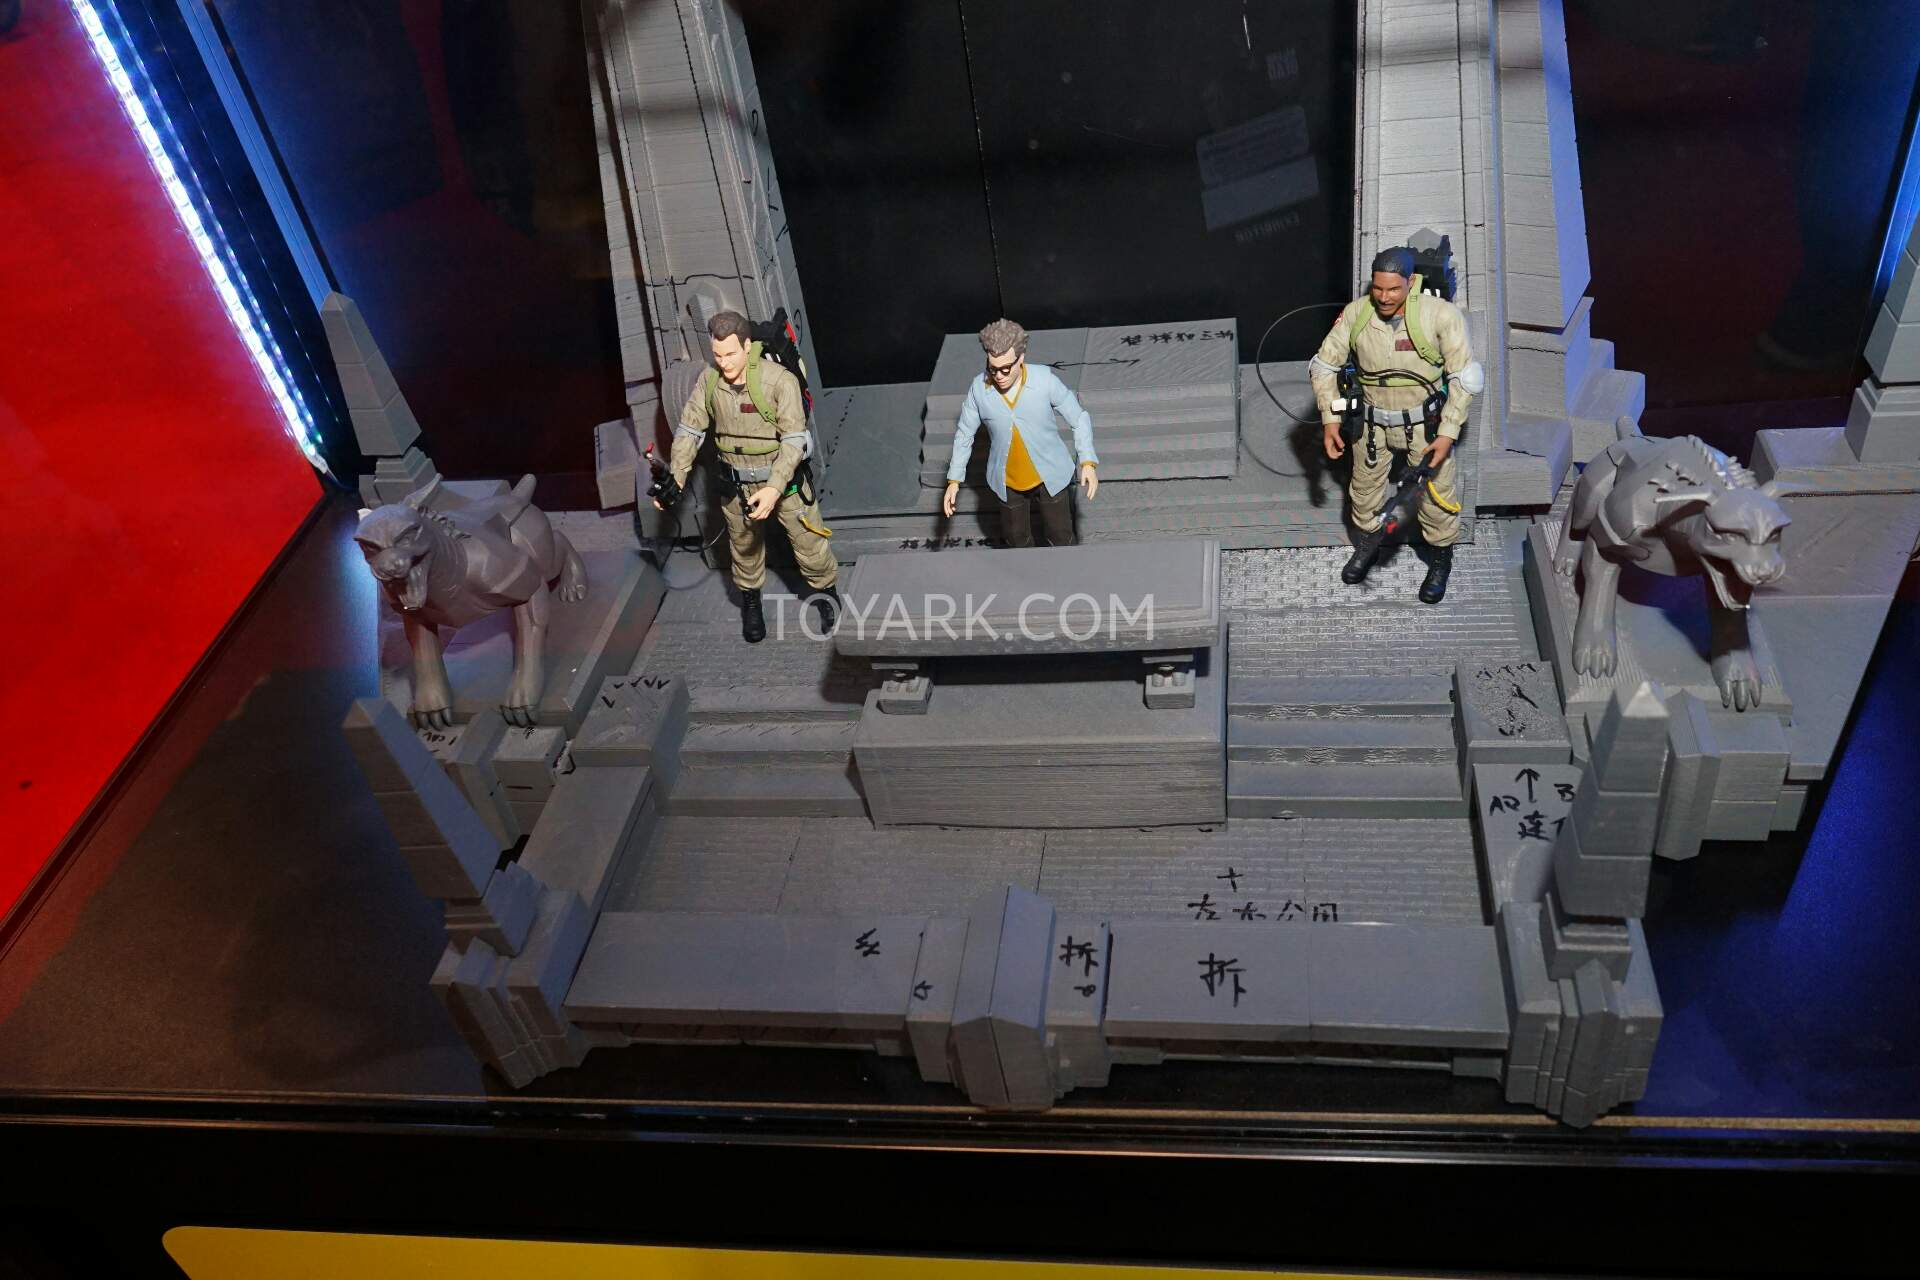 http://news.toyark.com/wp-content/uploads/sites/4/2015/10/NYCC2015-DST-Ghostbusters-014.jpg